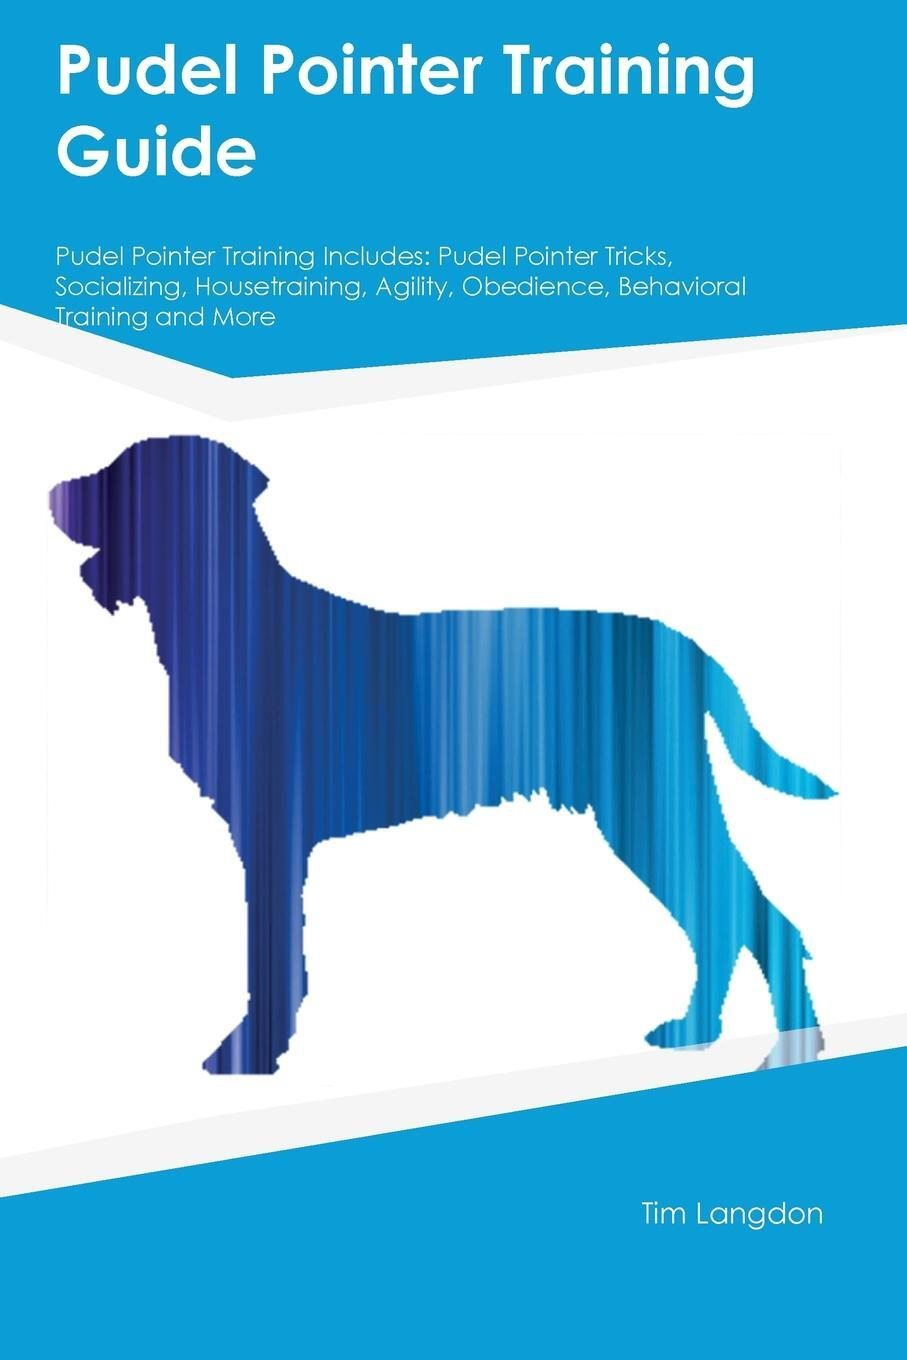 Pudel Pointer Training Guide Pudel Pointer Training Includes. Pudel Pointer Tricks, Socializing, Housetraining, Agility, Obedience, Behavioral Training and More. Sean Bailey